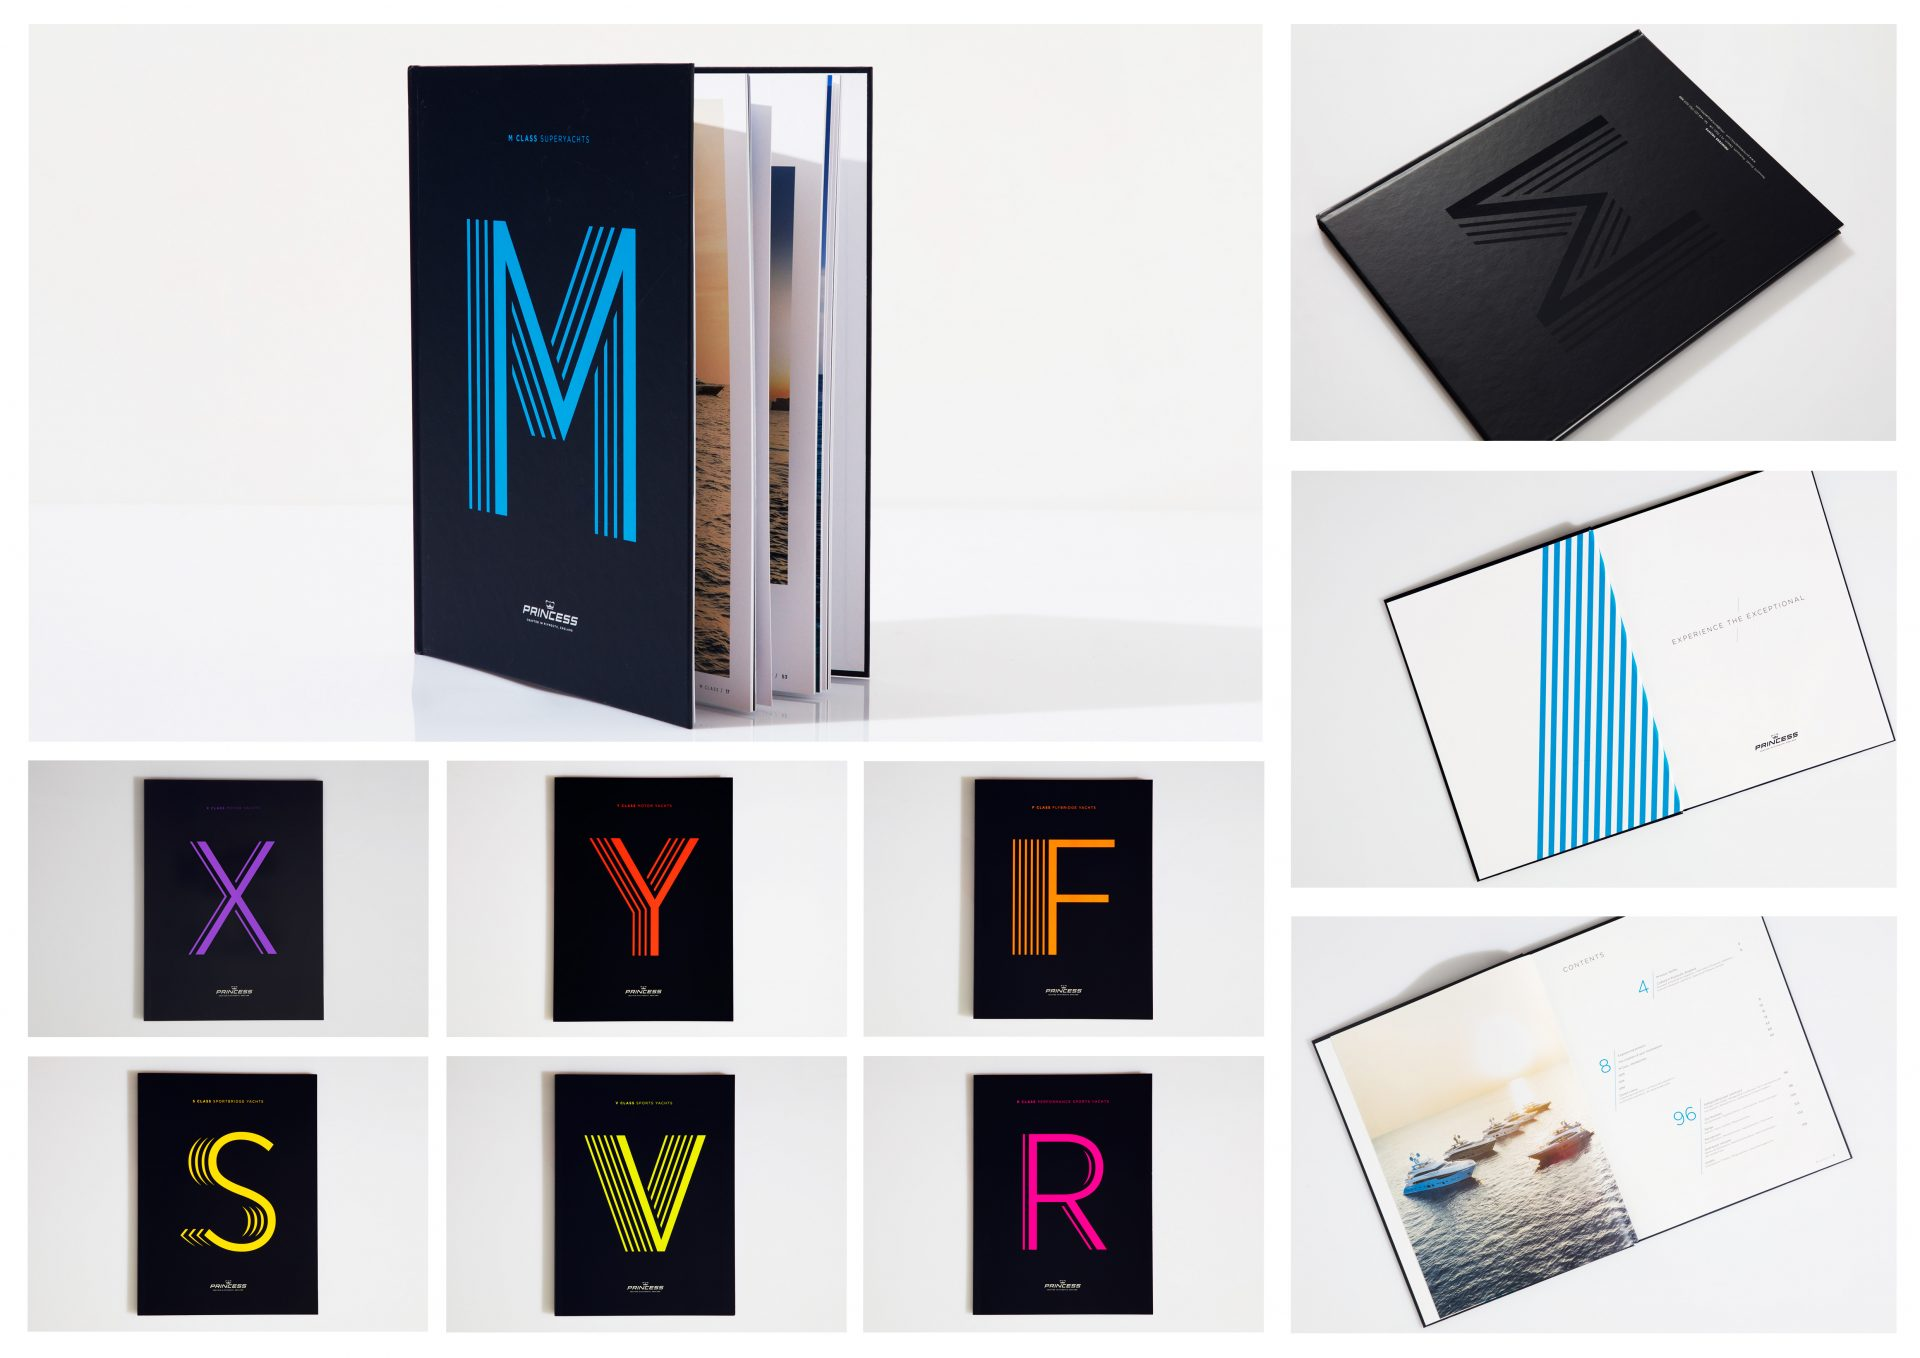 Elevating a brand through empathetic communications and a distinctive design language.